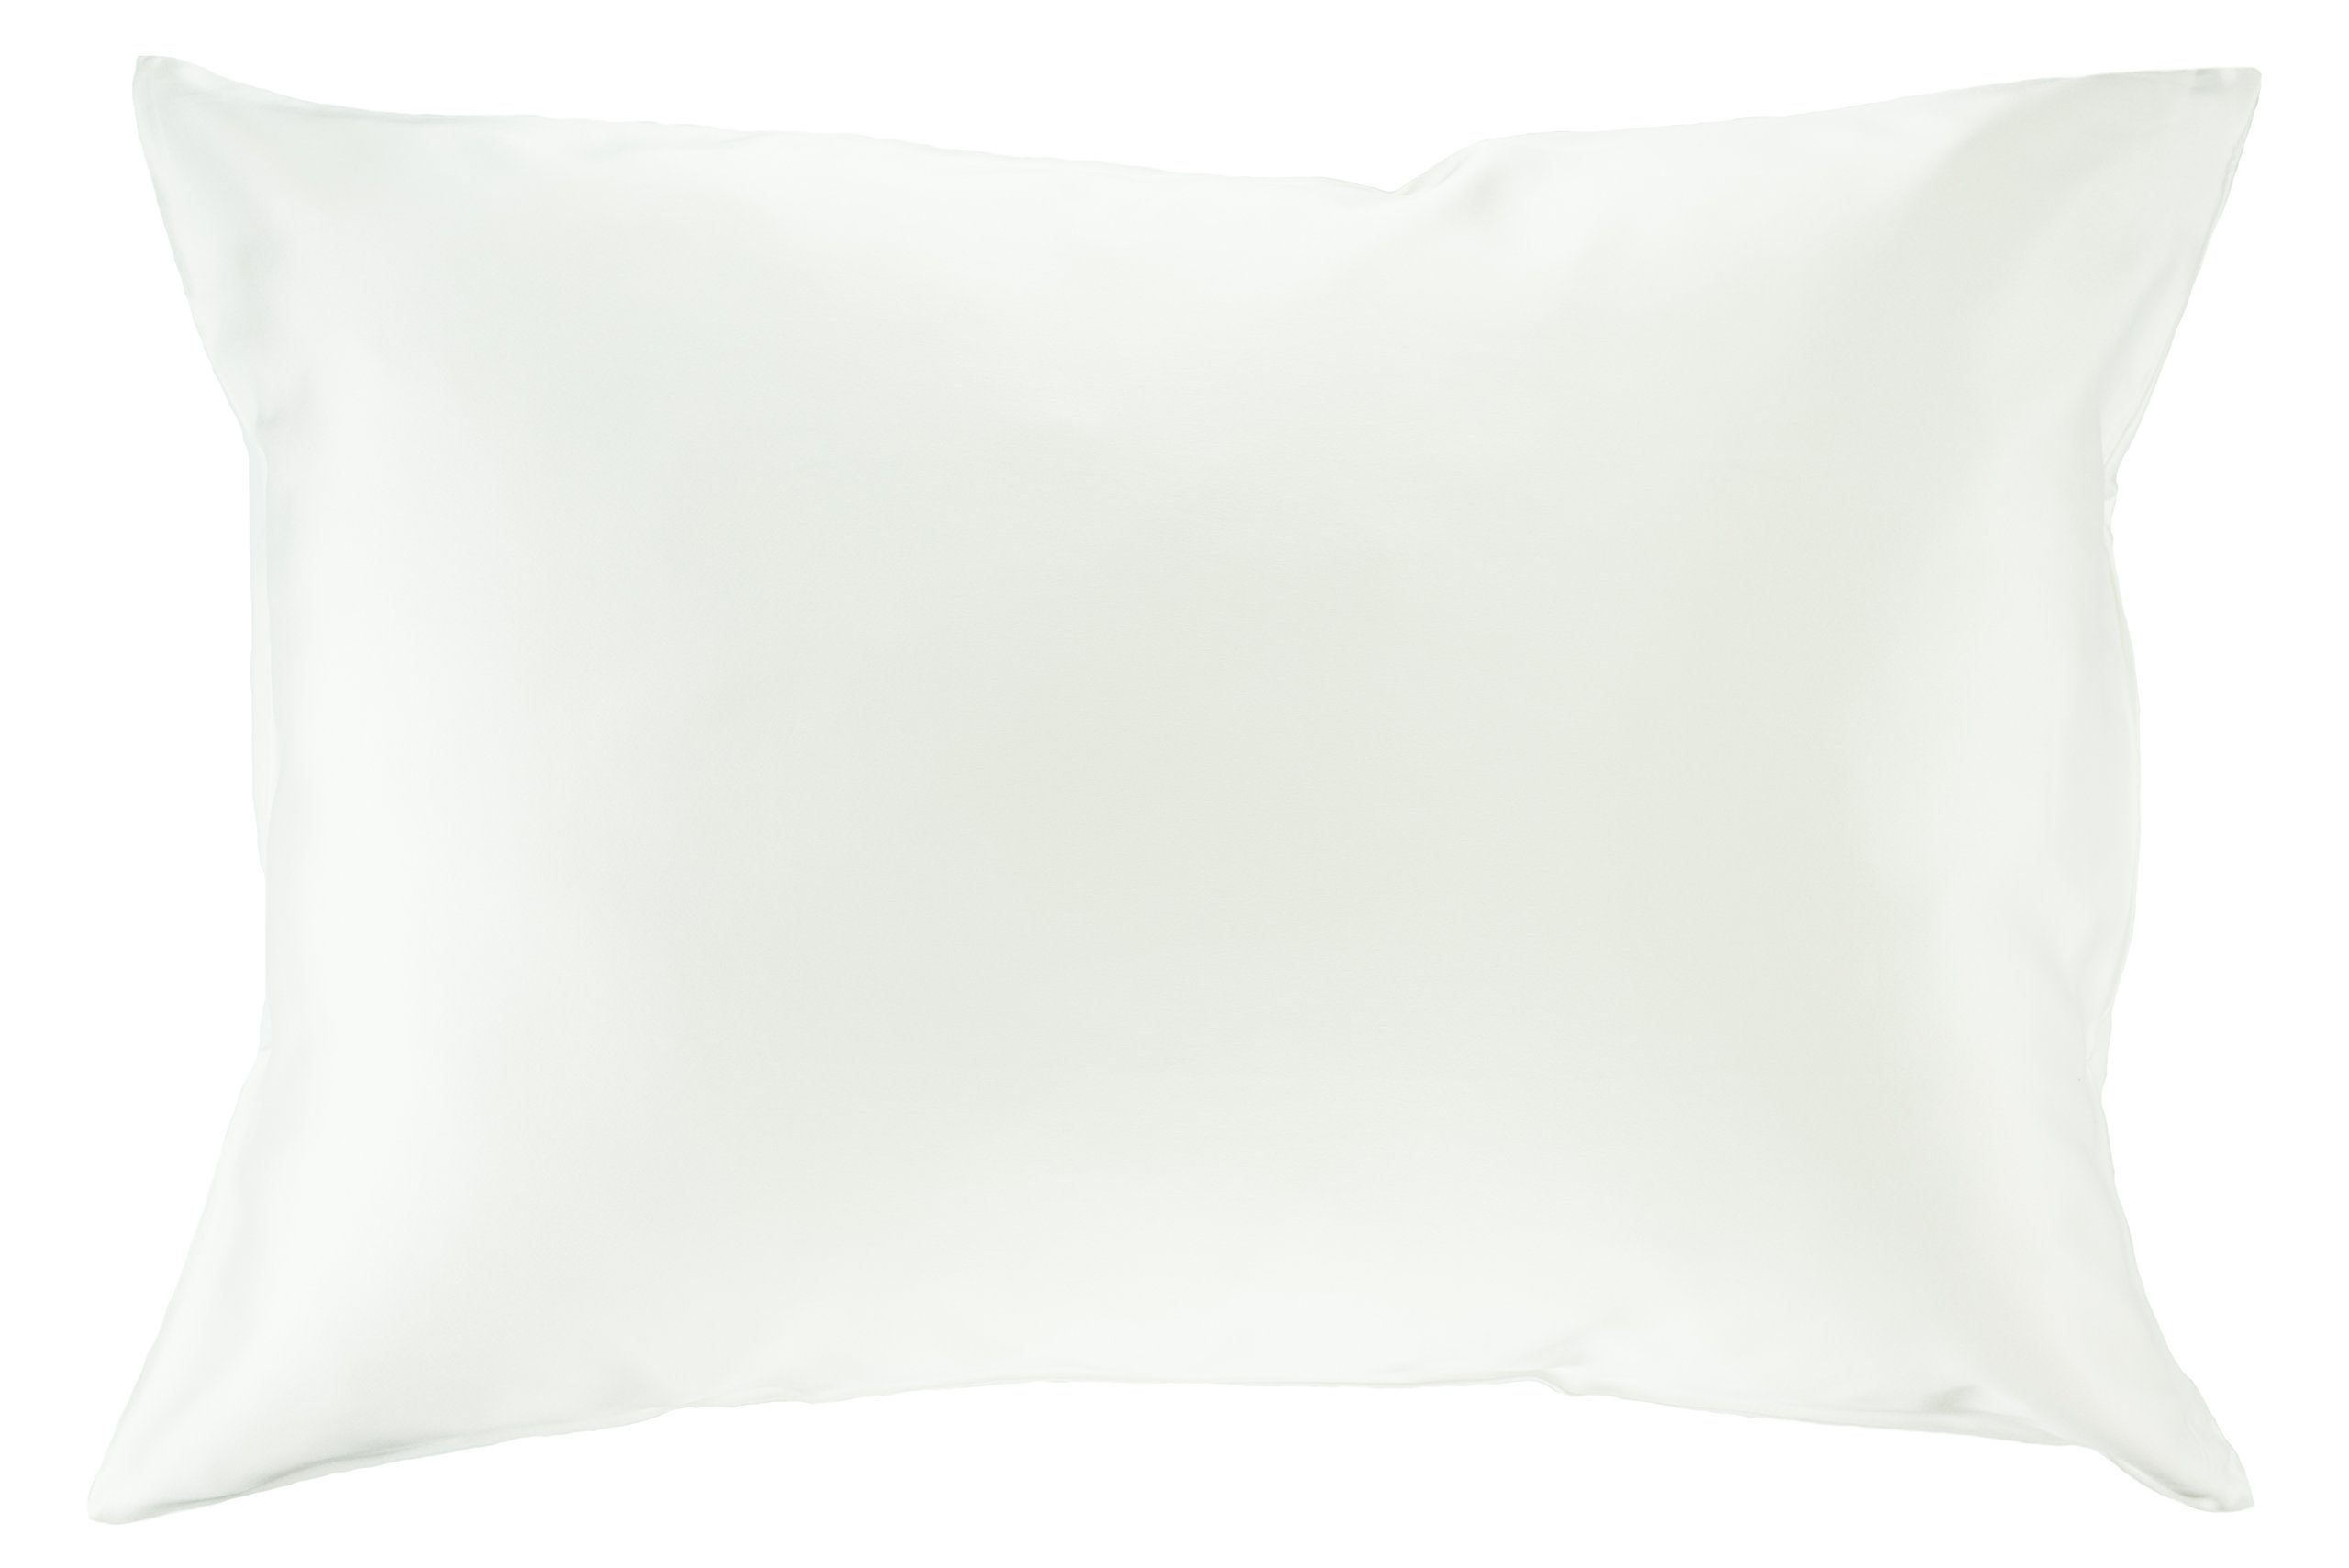 100% Silk Pillowcase for Hair Luxury 25 Momme Mulberry Silk, Charmeuse Silk on Both Sides -Gift Wrapped (King, White)